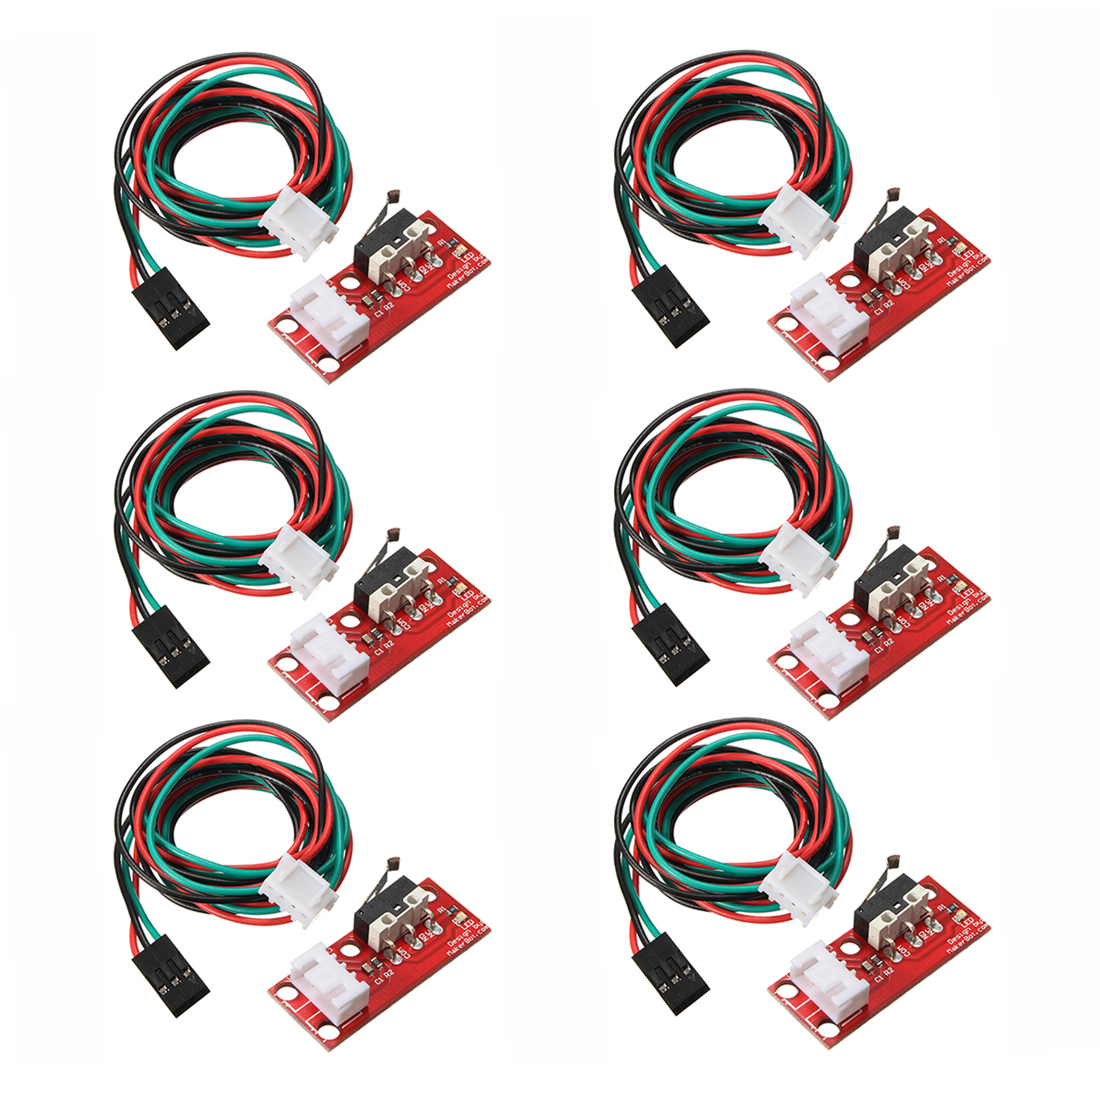 6pcs Endstop Limit Mechanical End Stop Switch W/ Cable for CNC 3D Printer RAMPS limit switch with wheel door stop switch